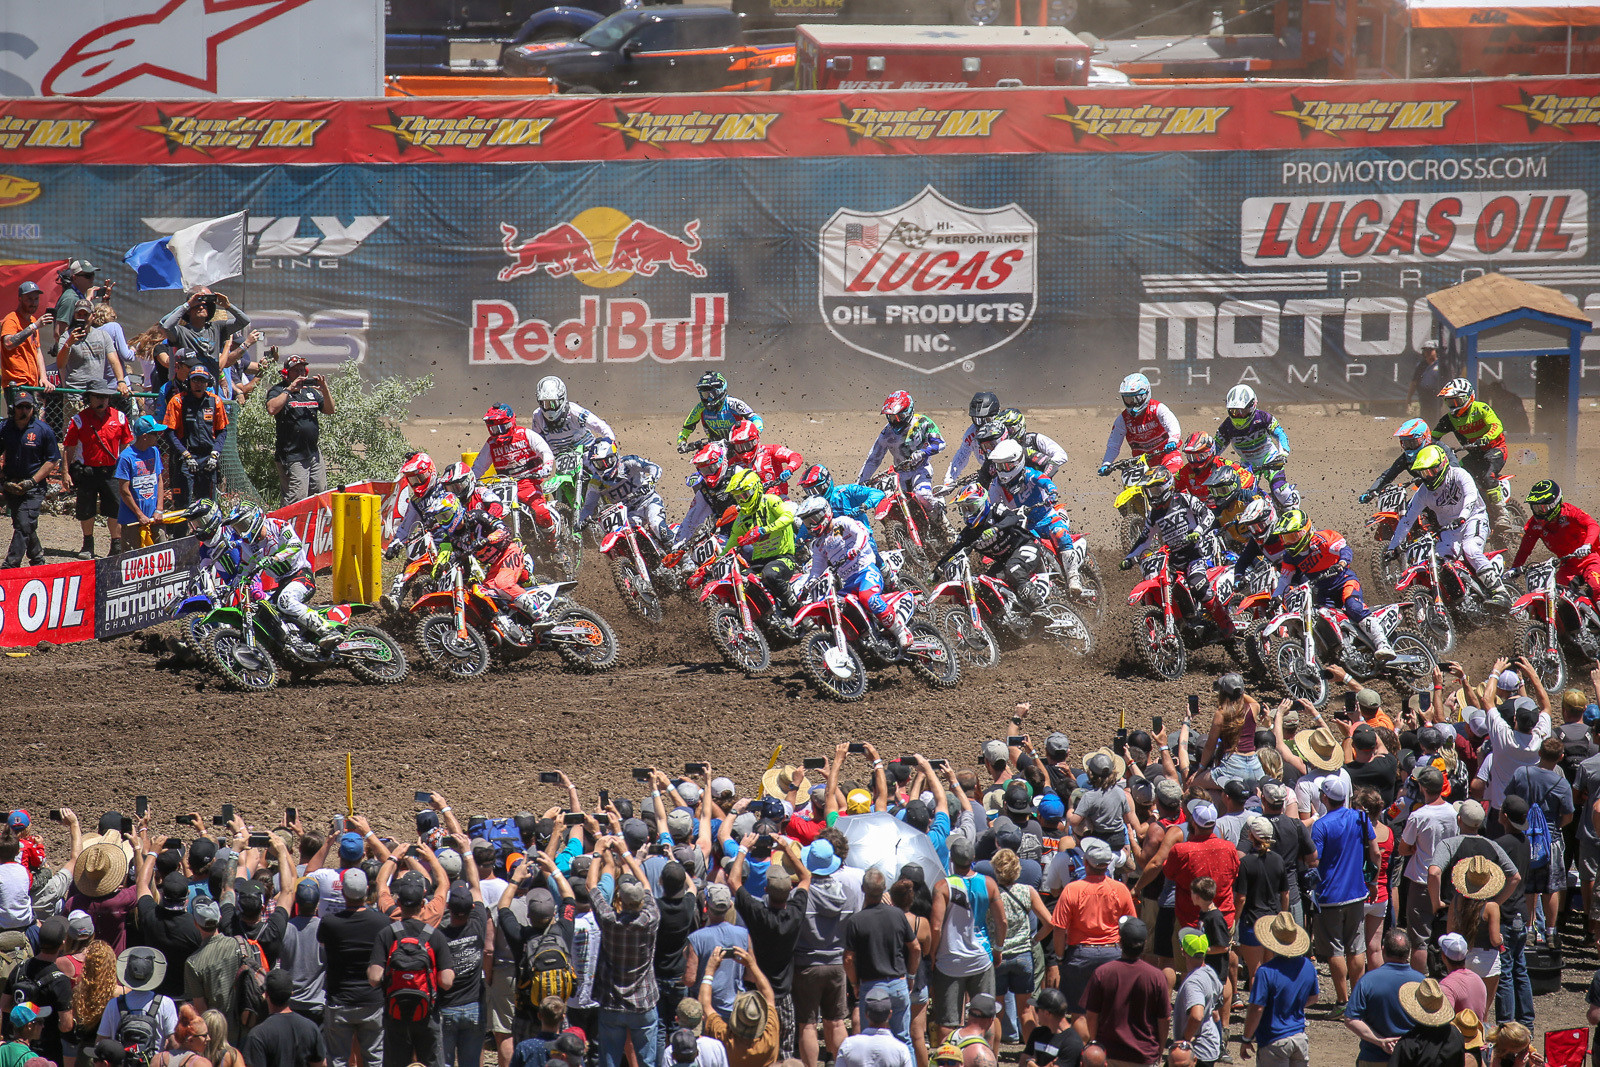 Cell phones ready? Let's get into it! Justin Barcia and Eli Tomac grabbed the early lead in 450 moto one.